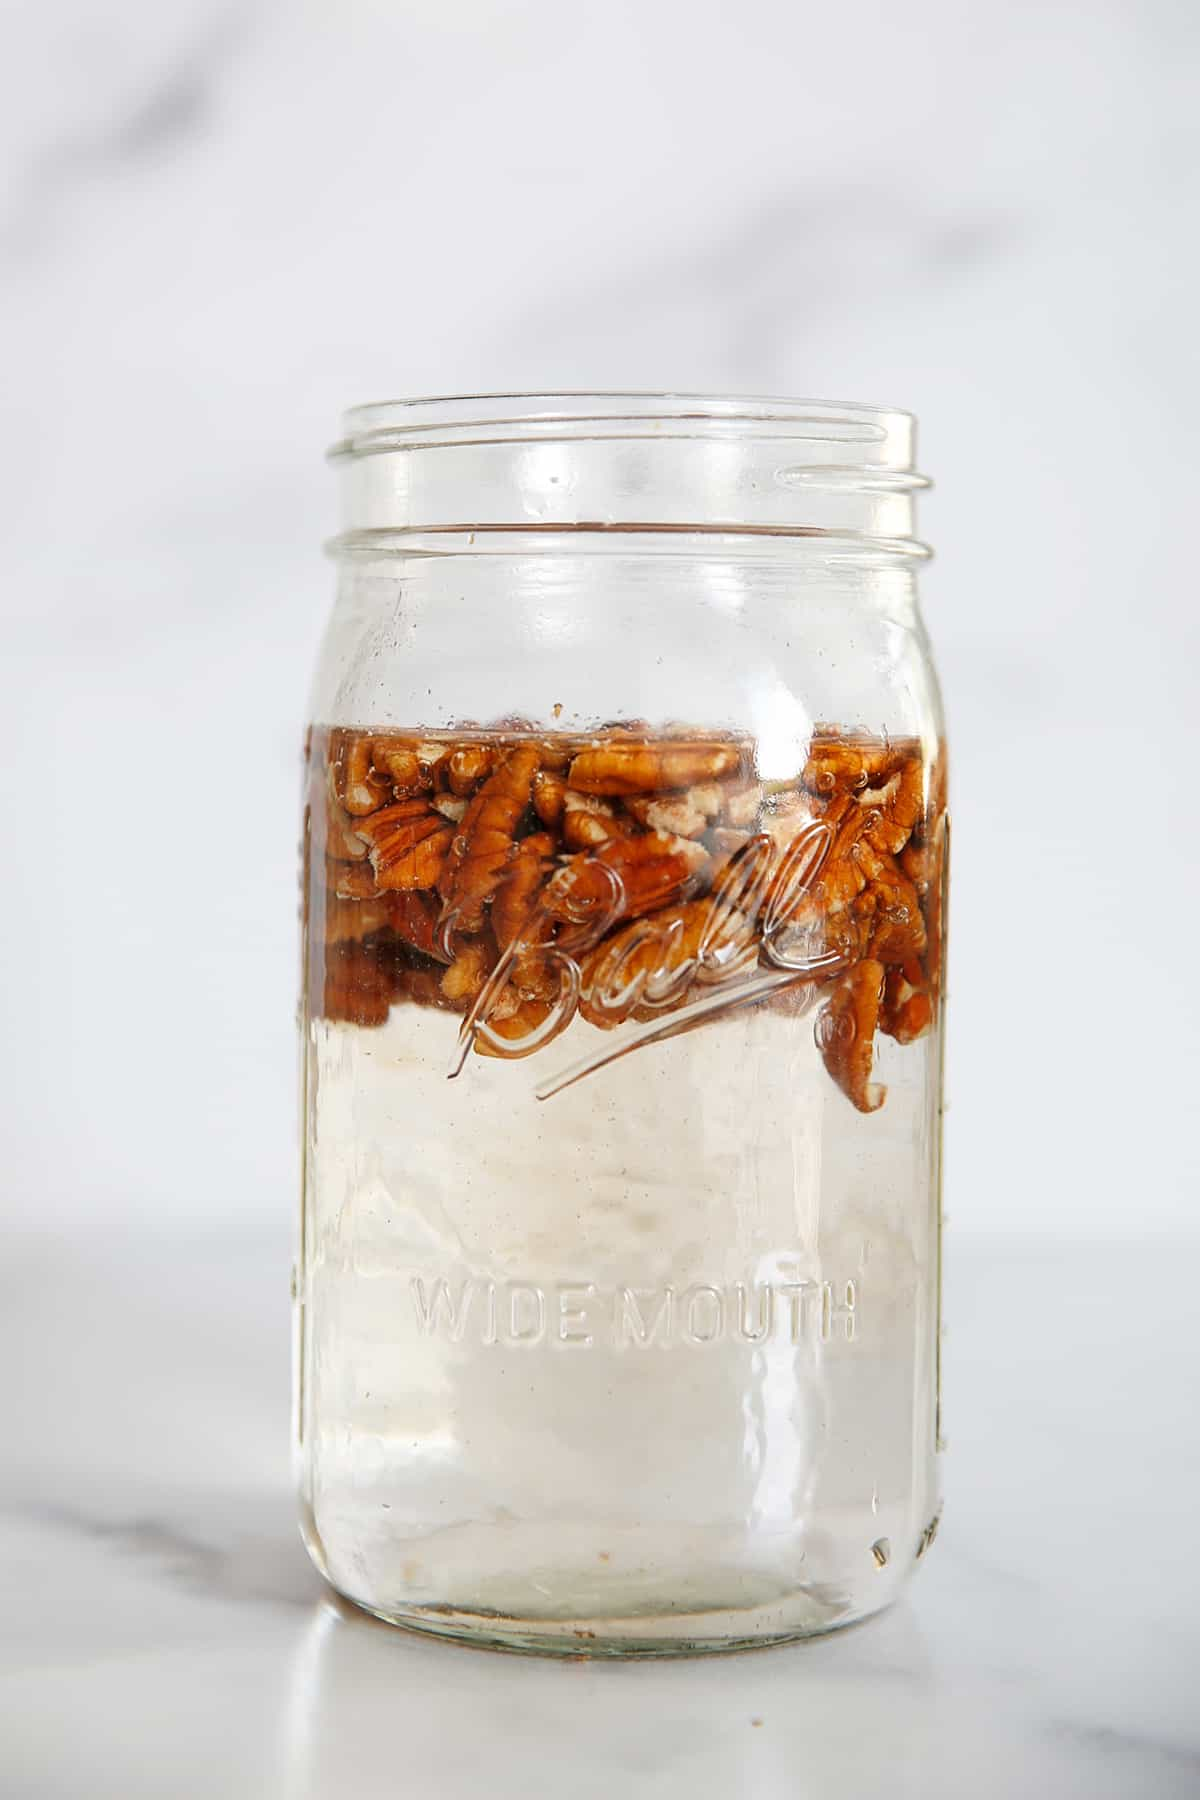 pecans soaking in a jar